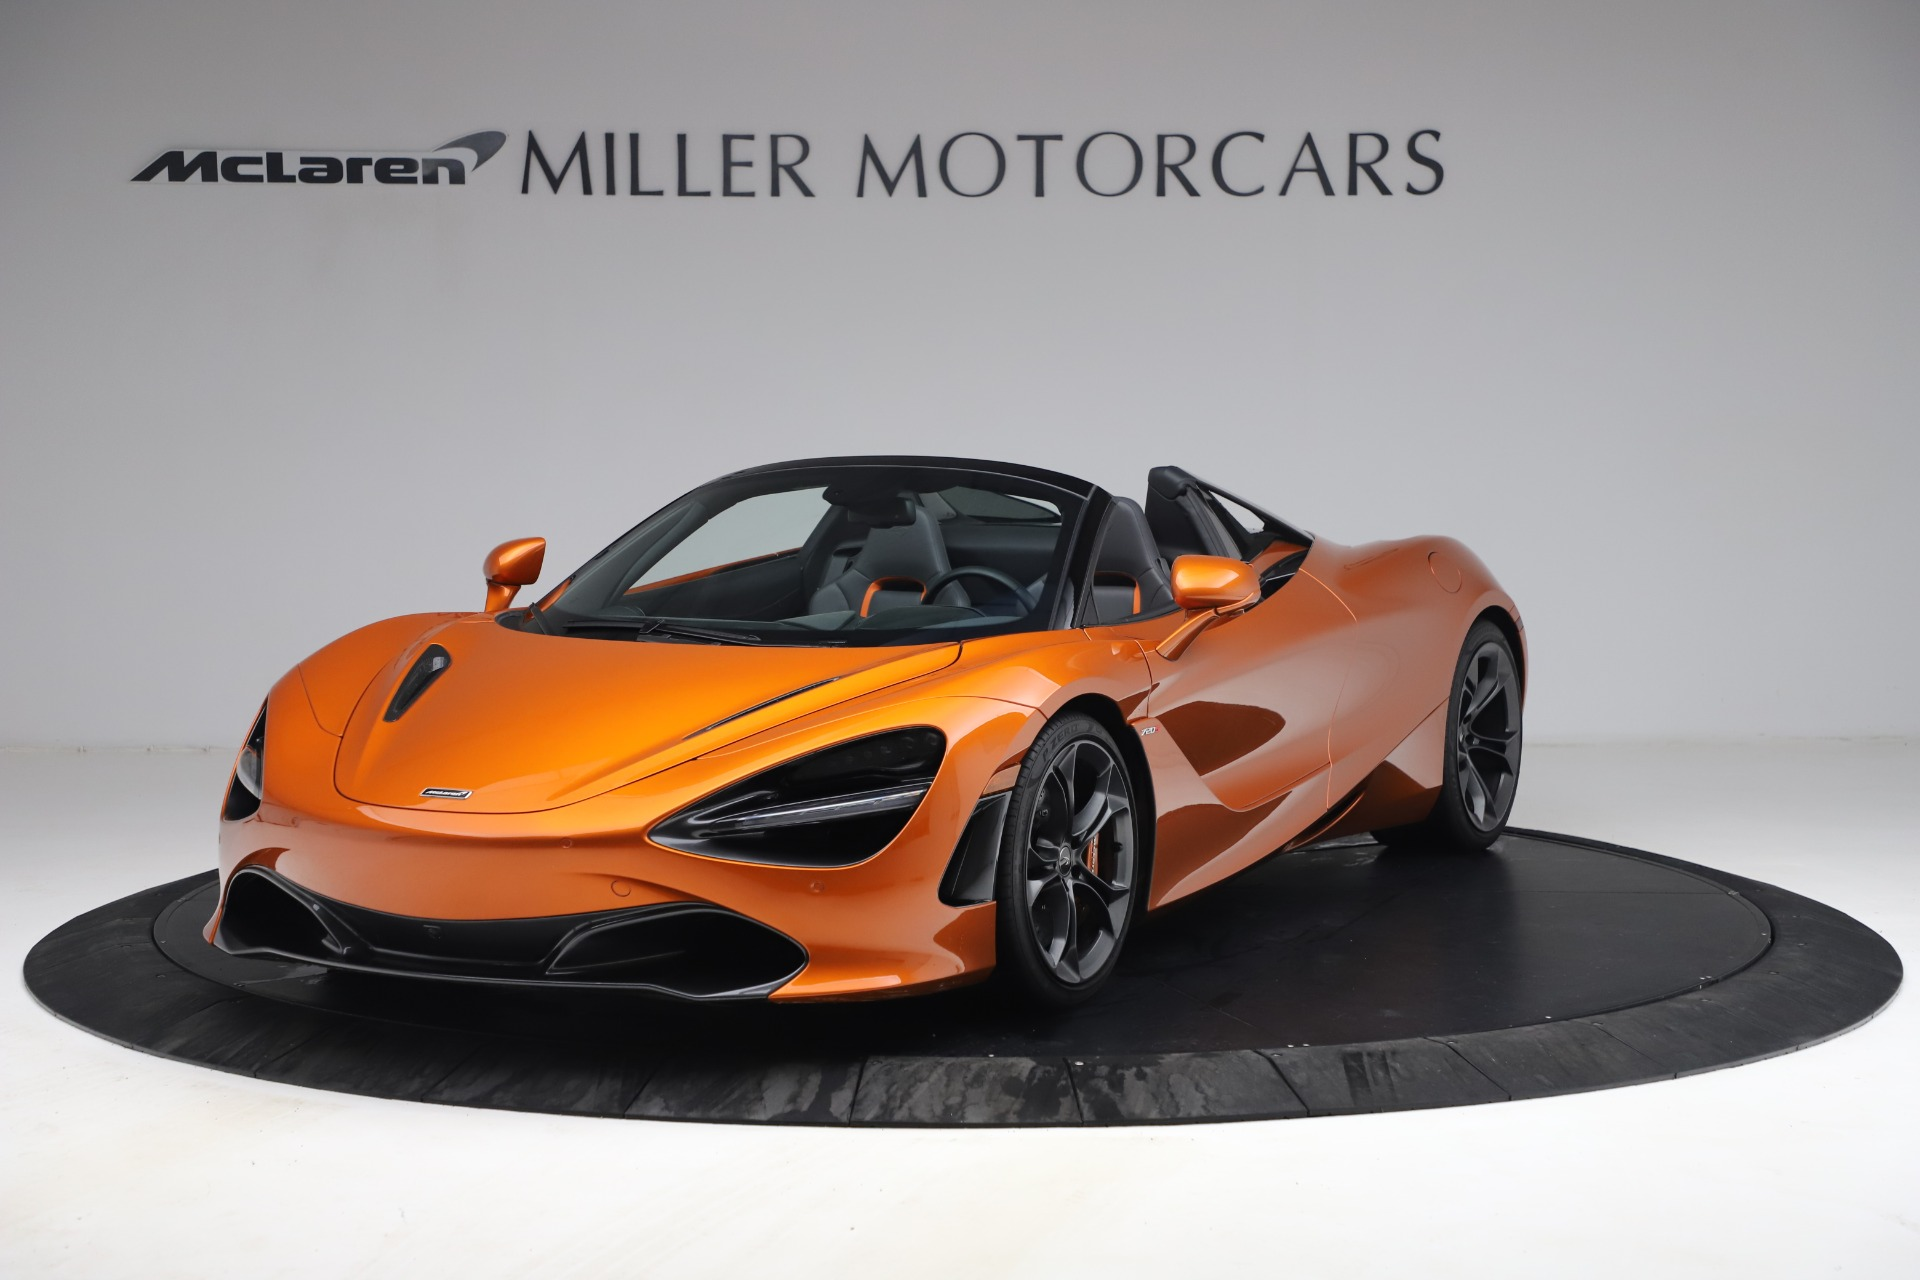 Used 2020 McLaren 720S Spider for sale $335,900 at Bentley Greenwich in Greenwich CT 06830 1